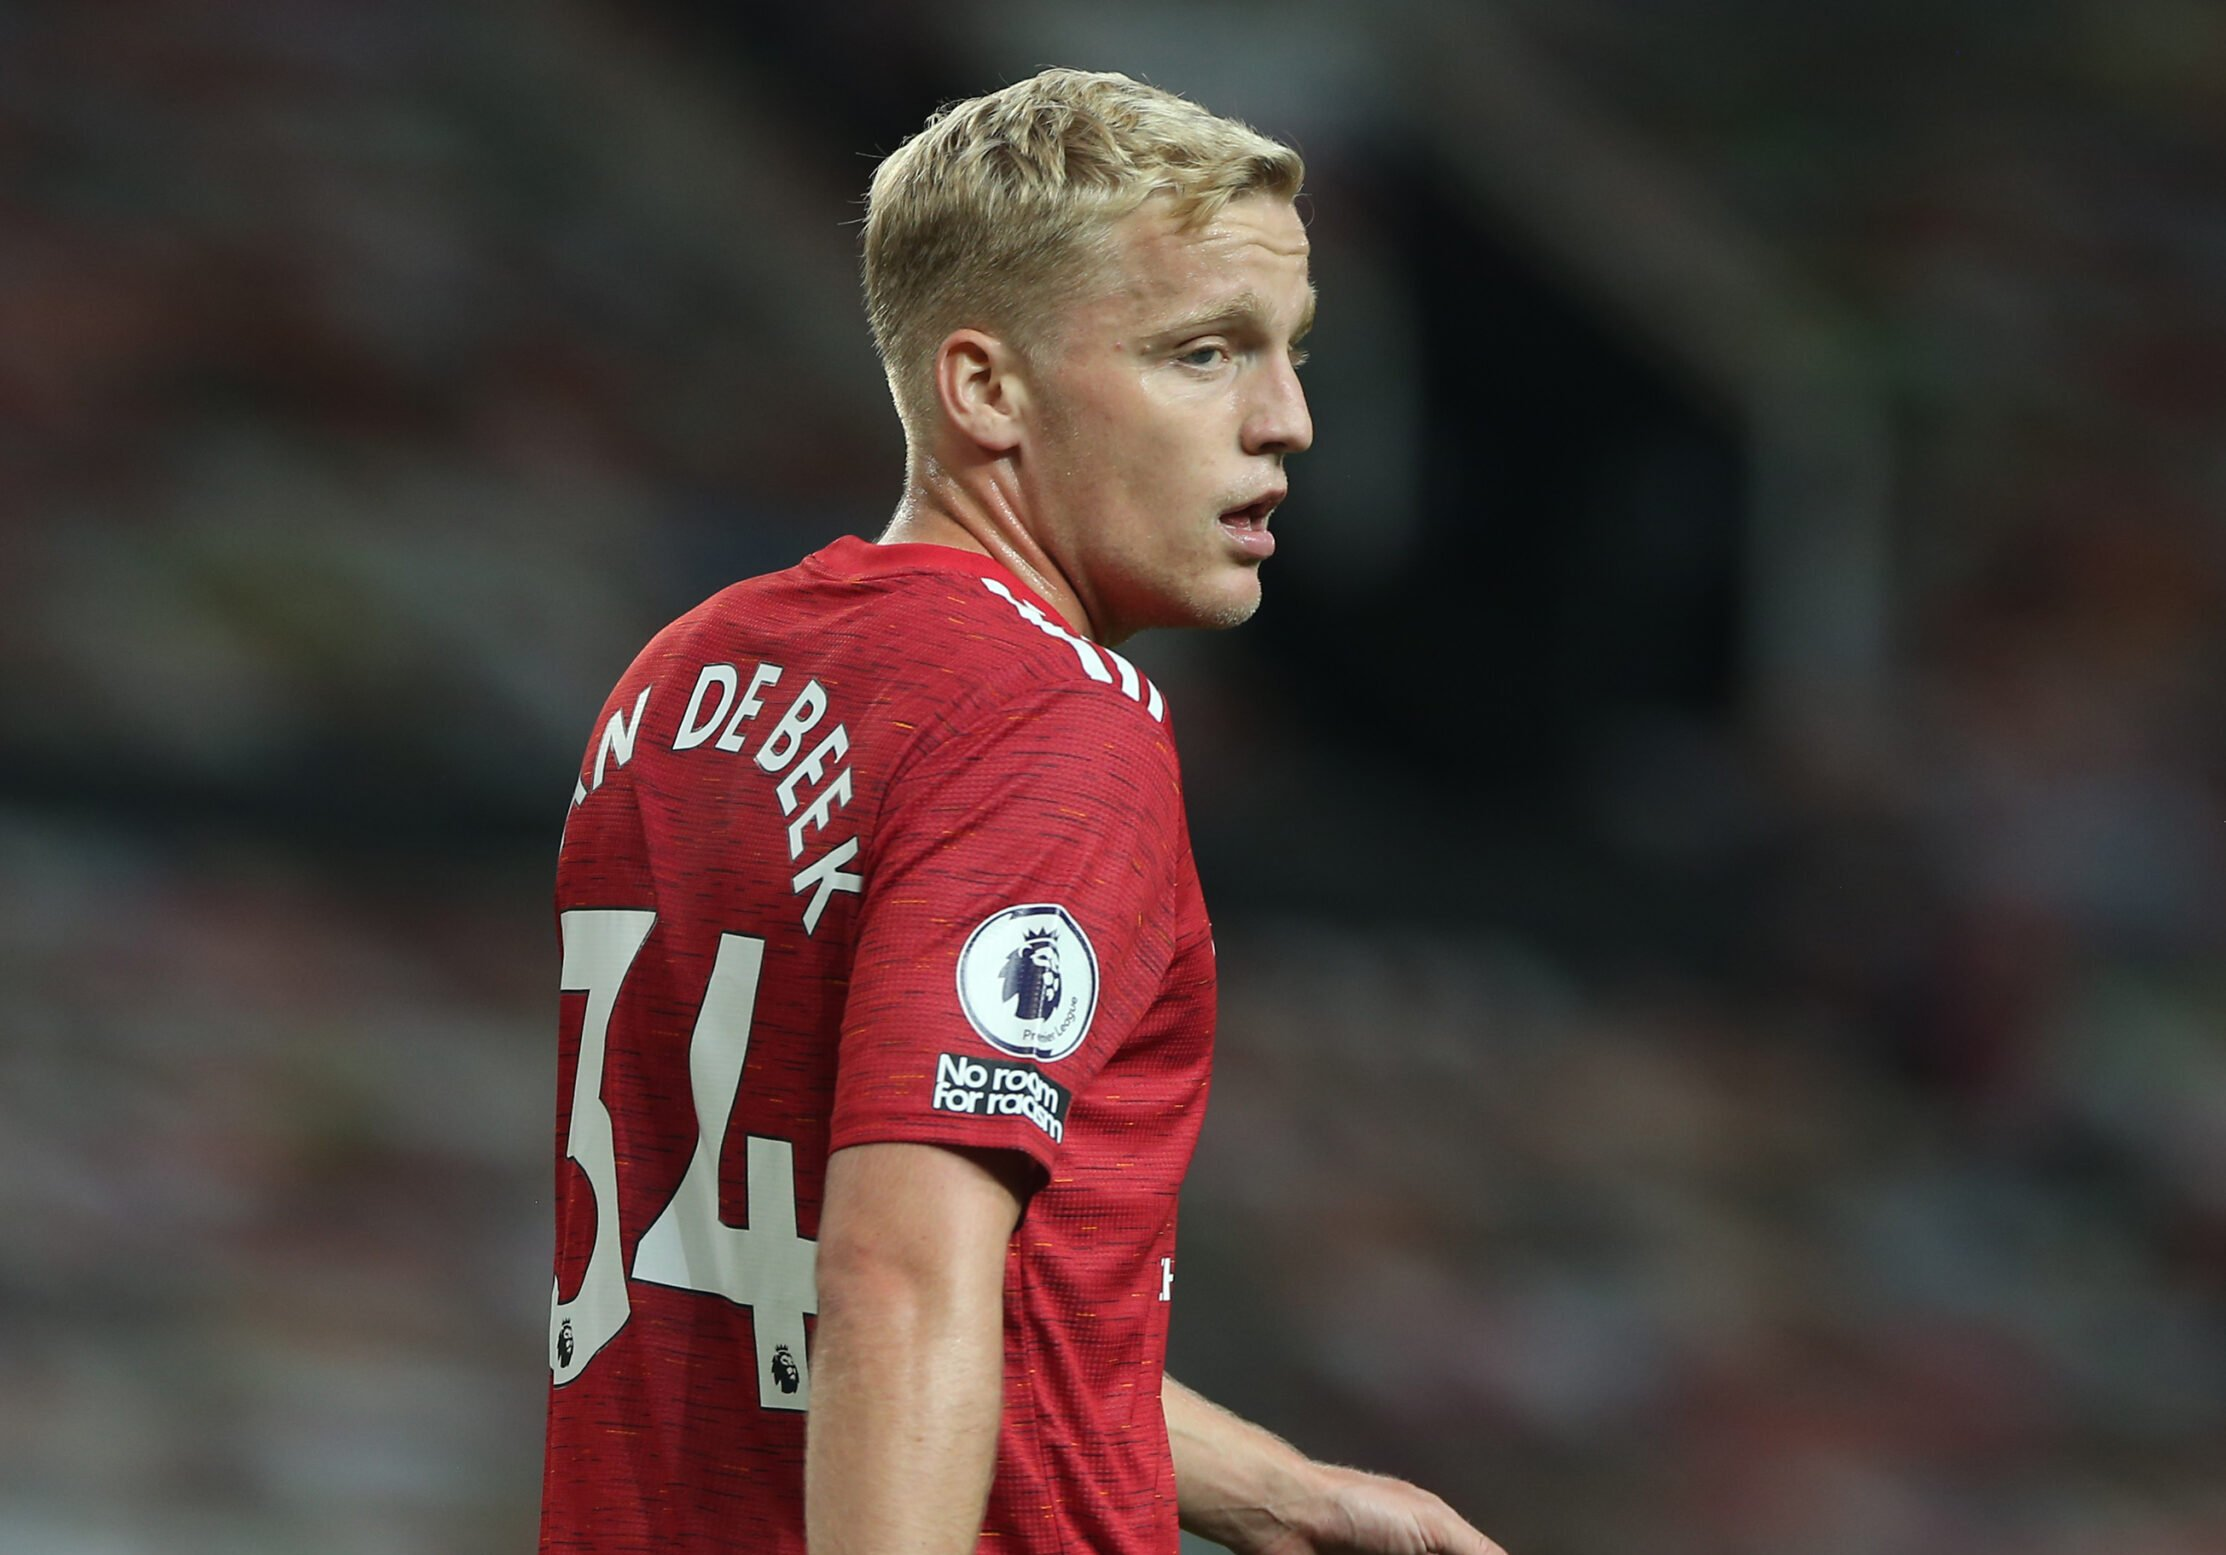 Donny van de Beek: We will fight for everything – utdreport